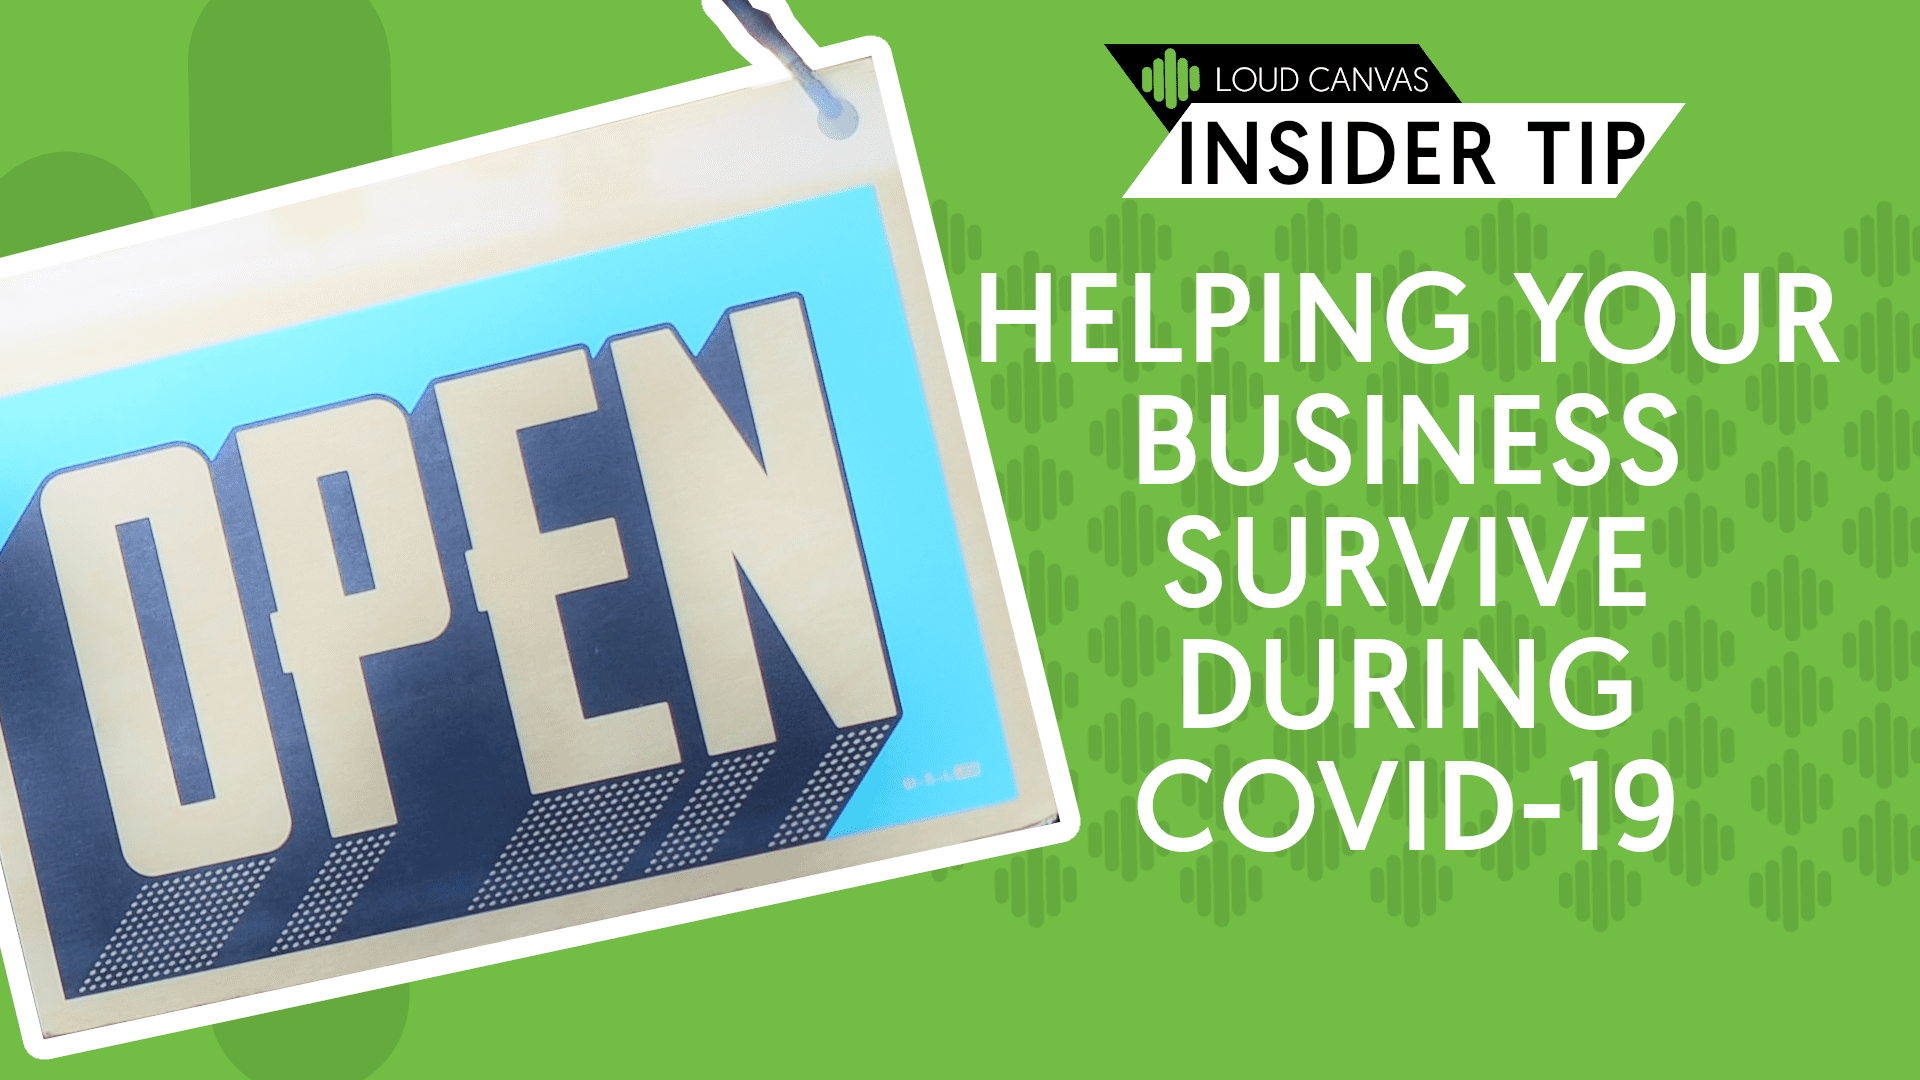 Helping Your Business Survive During COVID-19